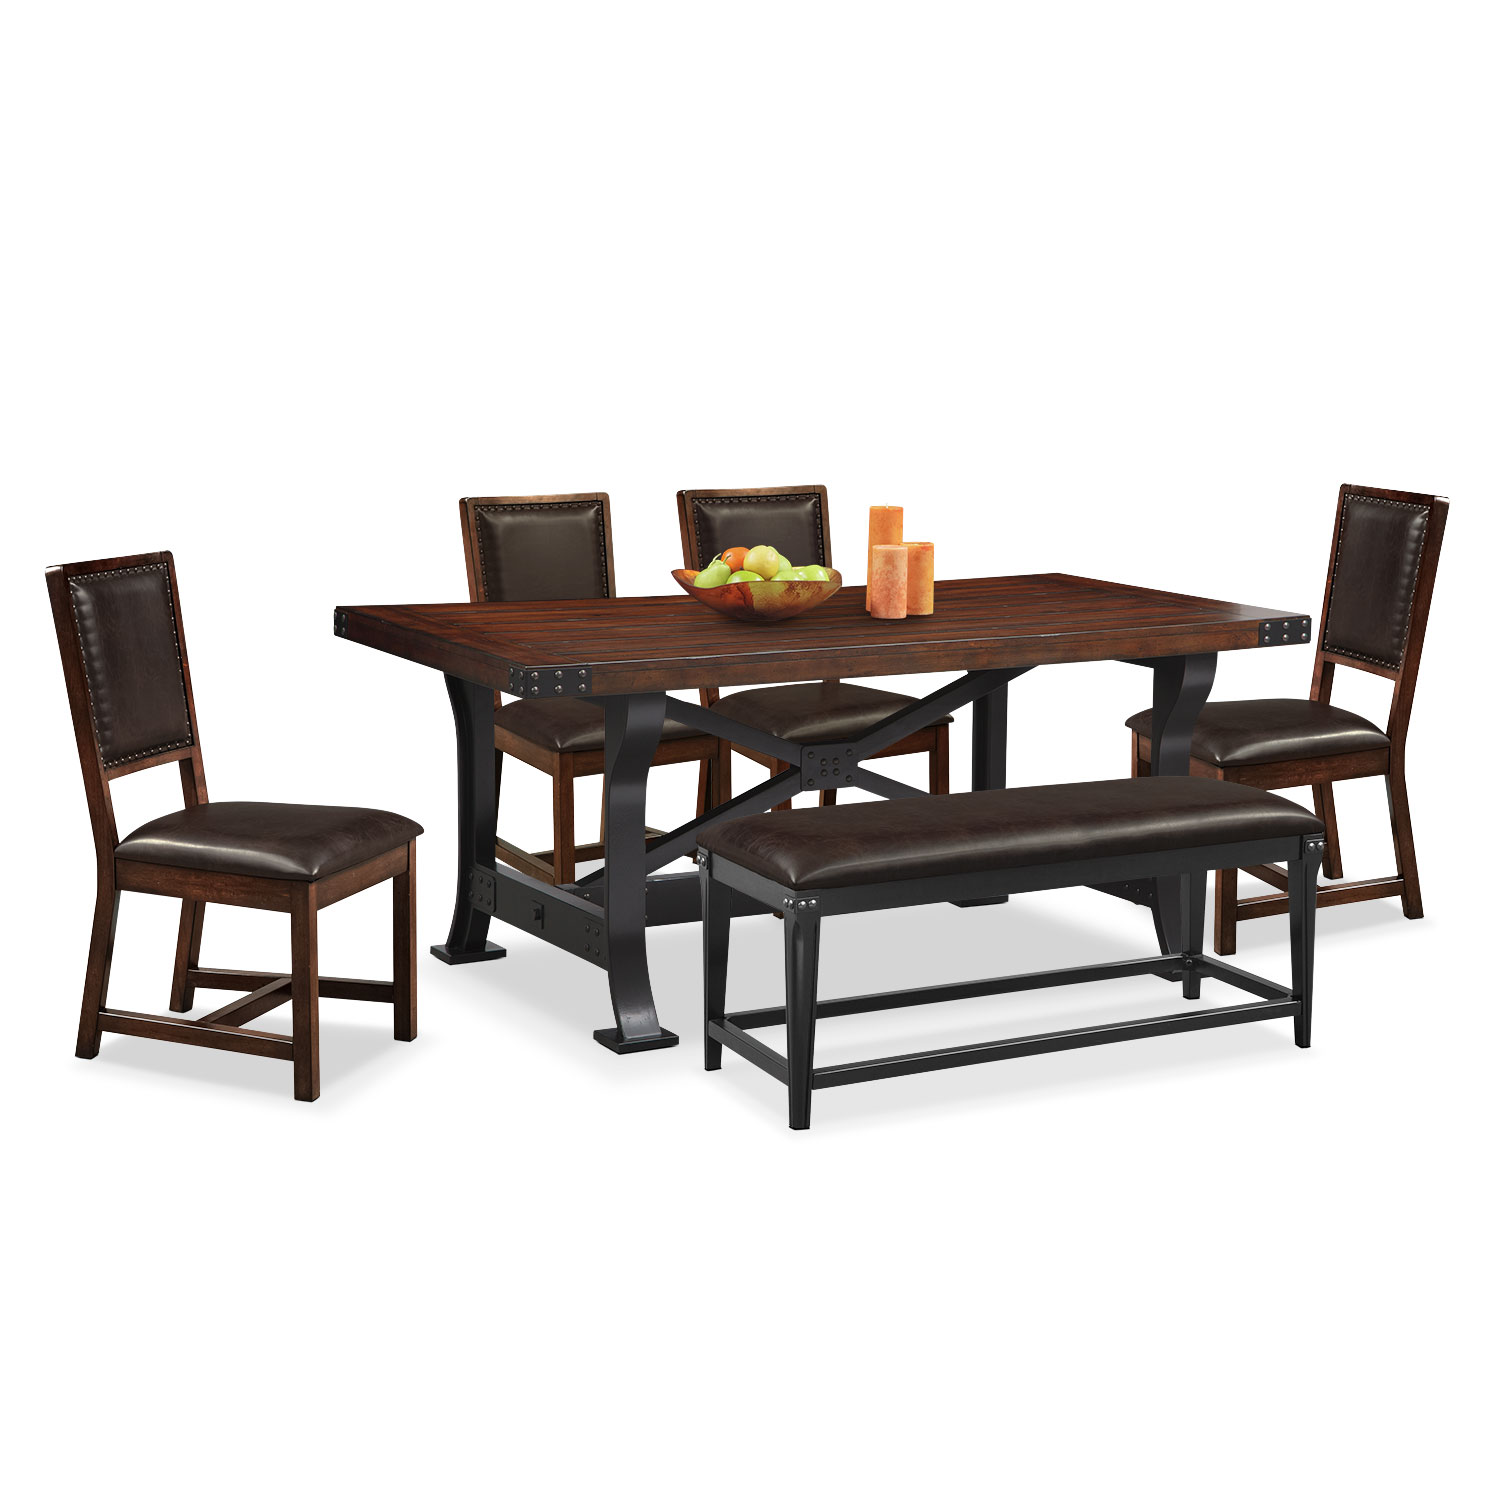 newcastle table 4 chairs and bench mahogany - Dining Room Sets Value City Furniture